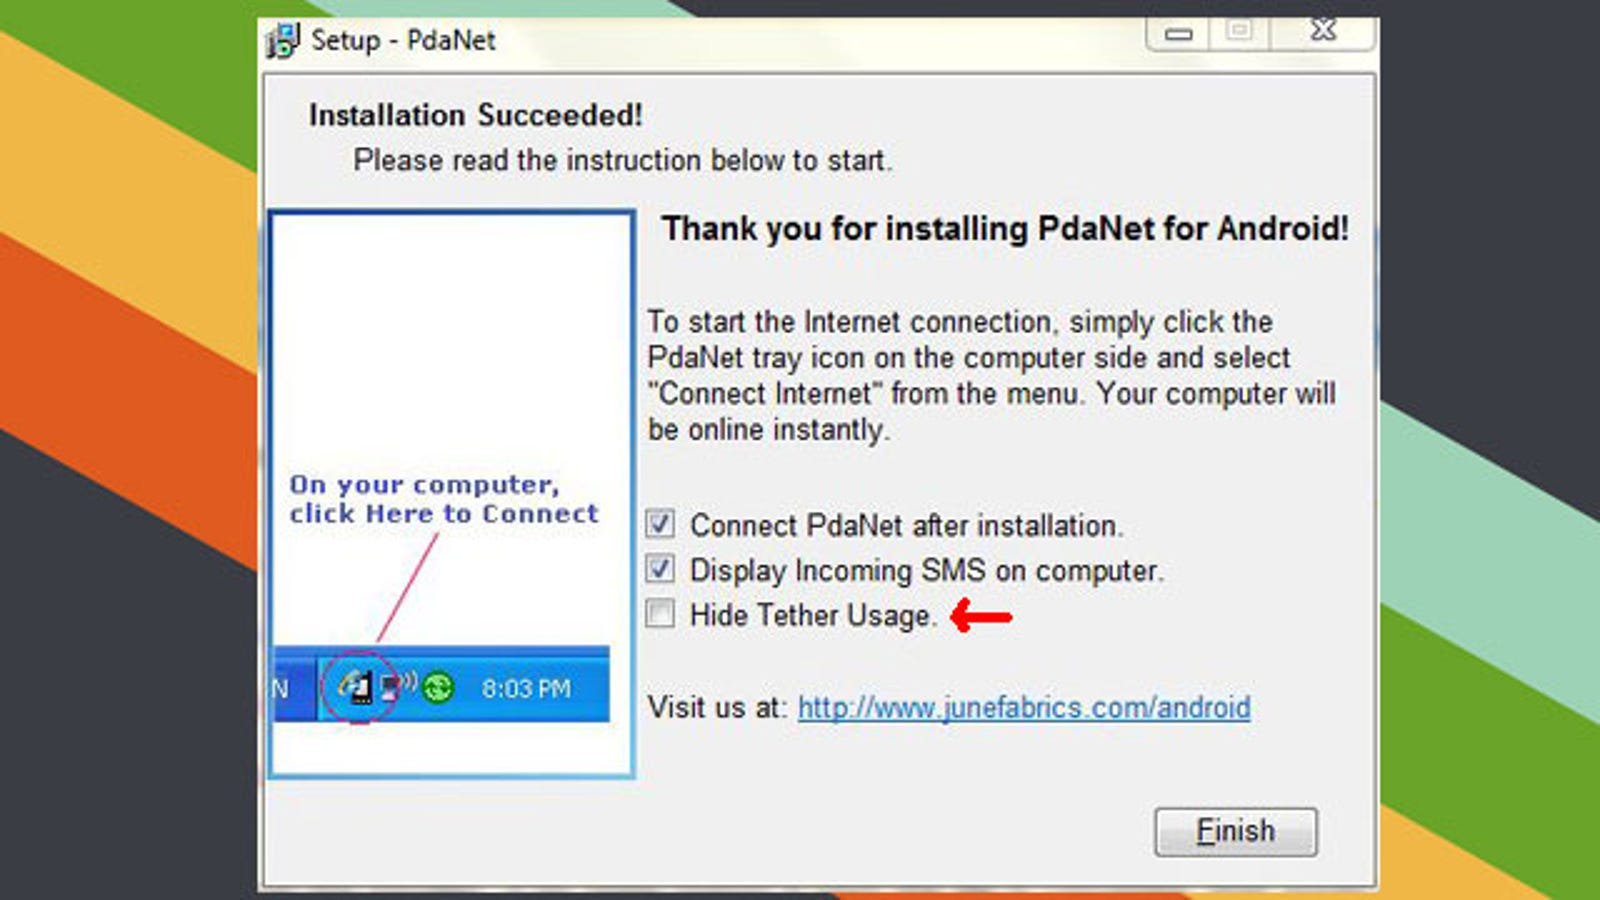 PdaNet 3 0 Adds Feature to Mask Your Tethering Usage